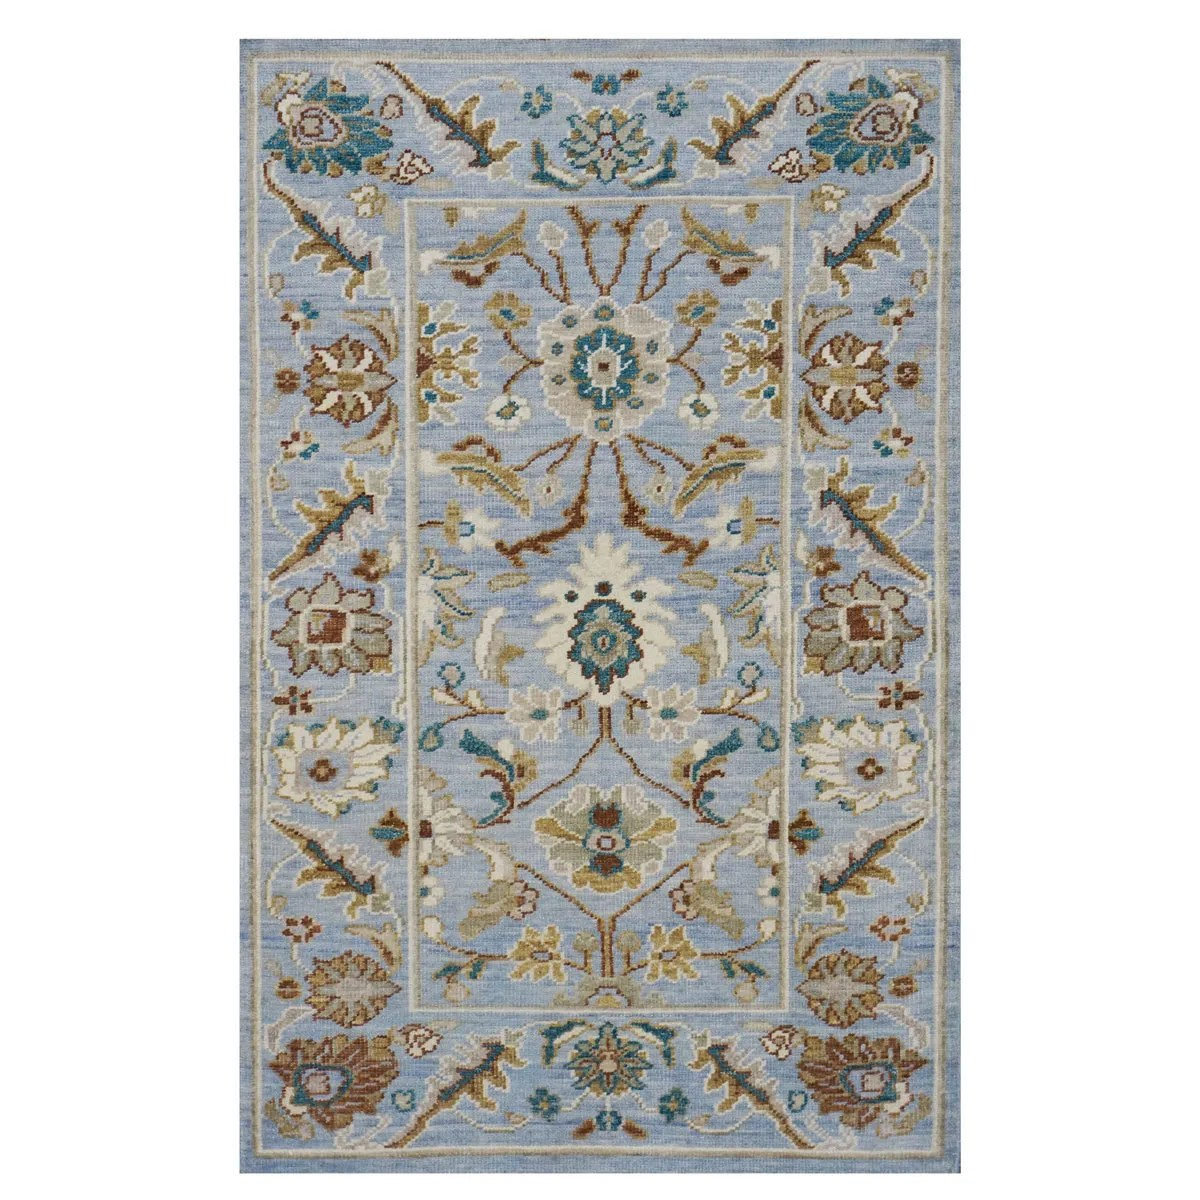 Area Rugs www.ashlyrugs.com Sultanabad Masters Collection 3 x 5 Blue